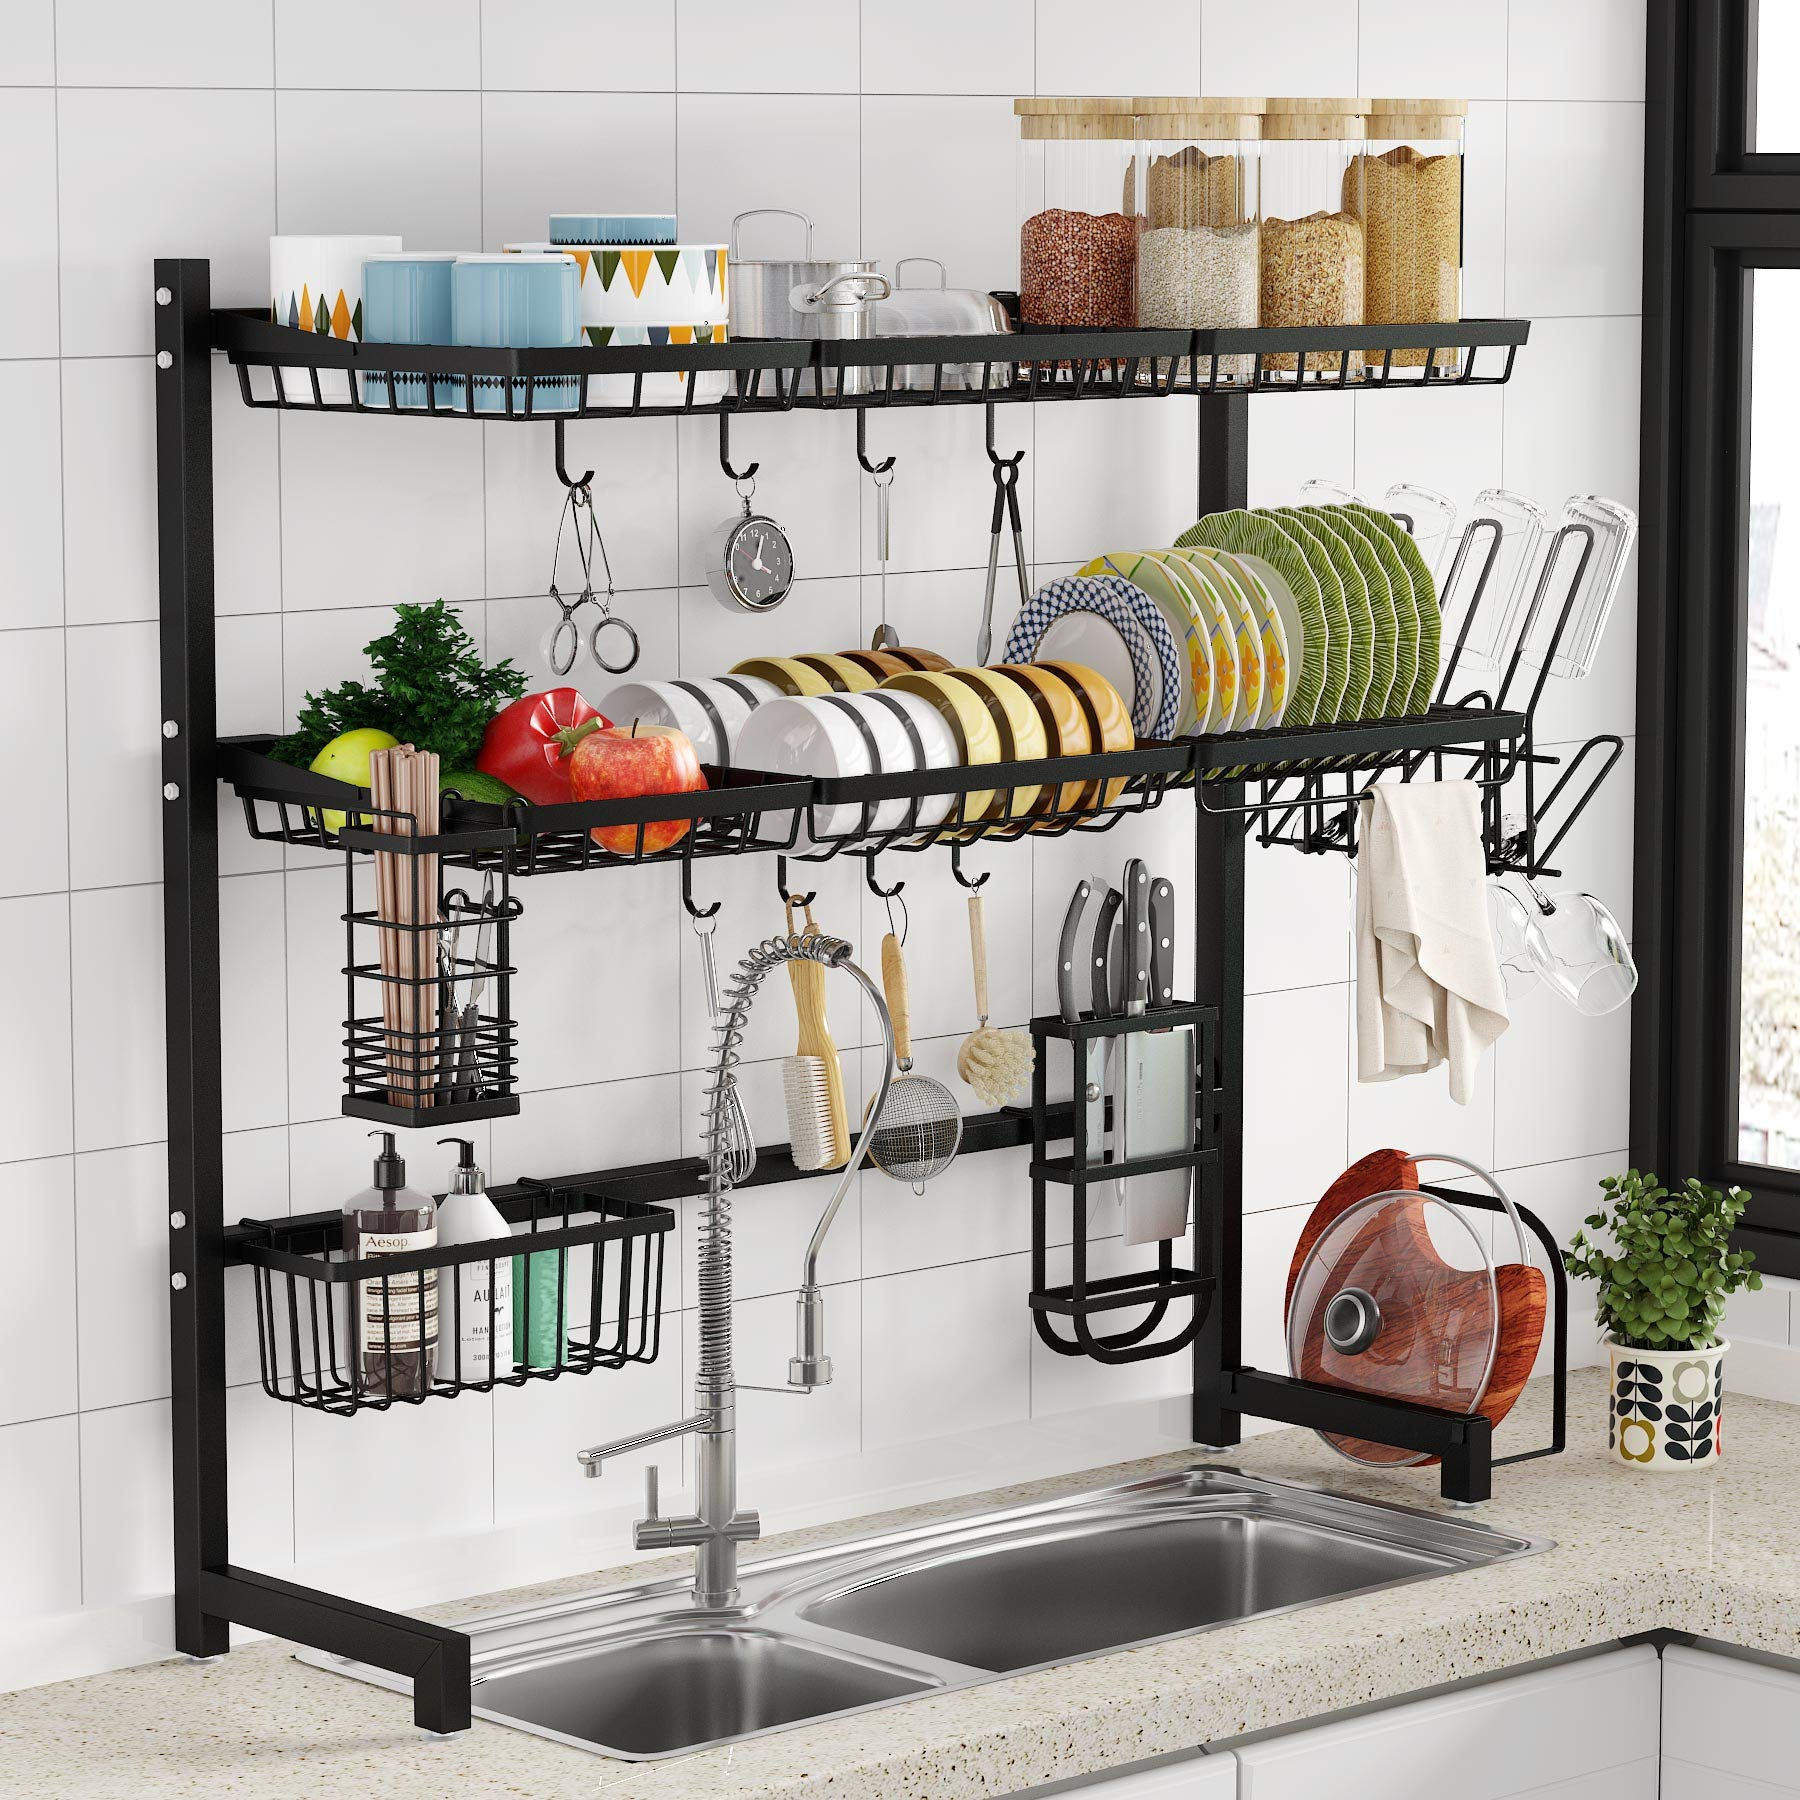 Over The Sink Dish Drying Rack 1easylife 3 Tier Stainless Steel Large Kitchen Rack Dish Drainers For Home Kitchen Counter Storage Shelf With Utensil Holder Above Sink Non Slip Shelves Organizer Buy Online